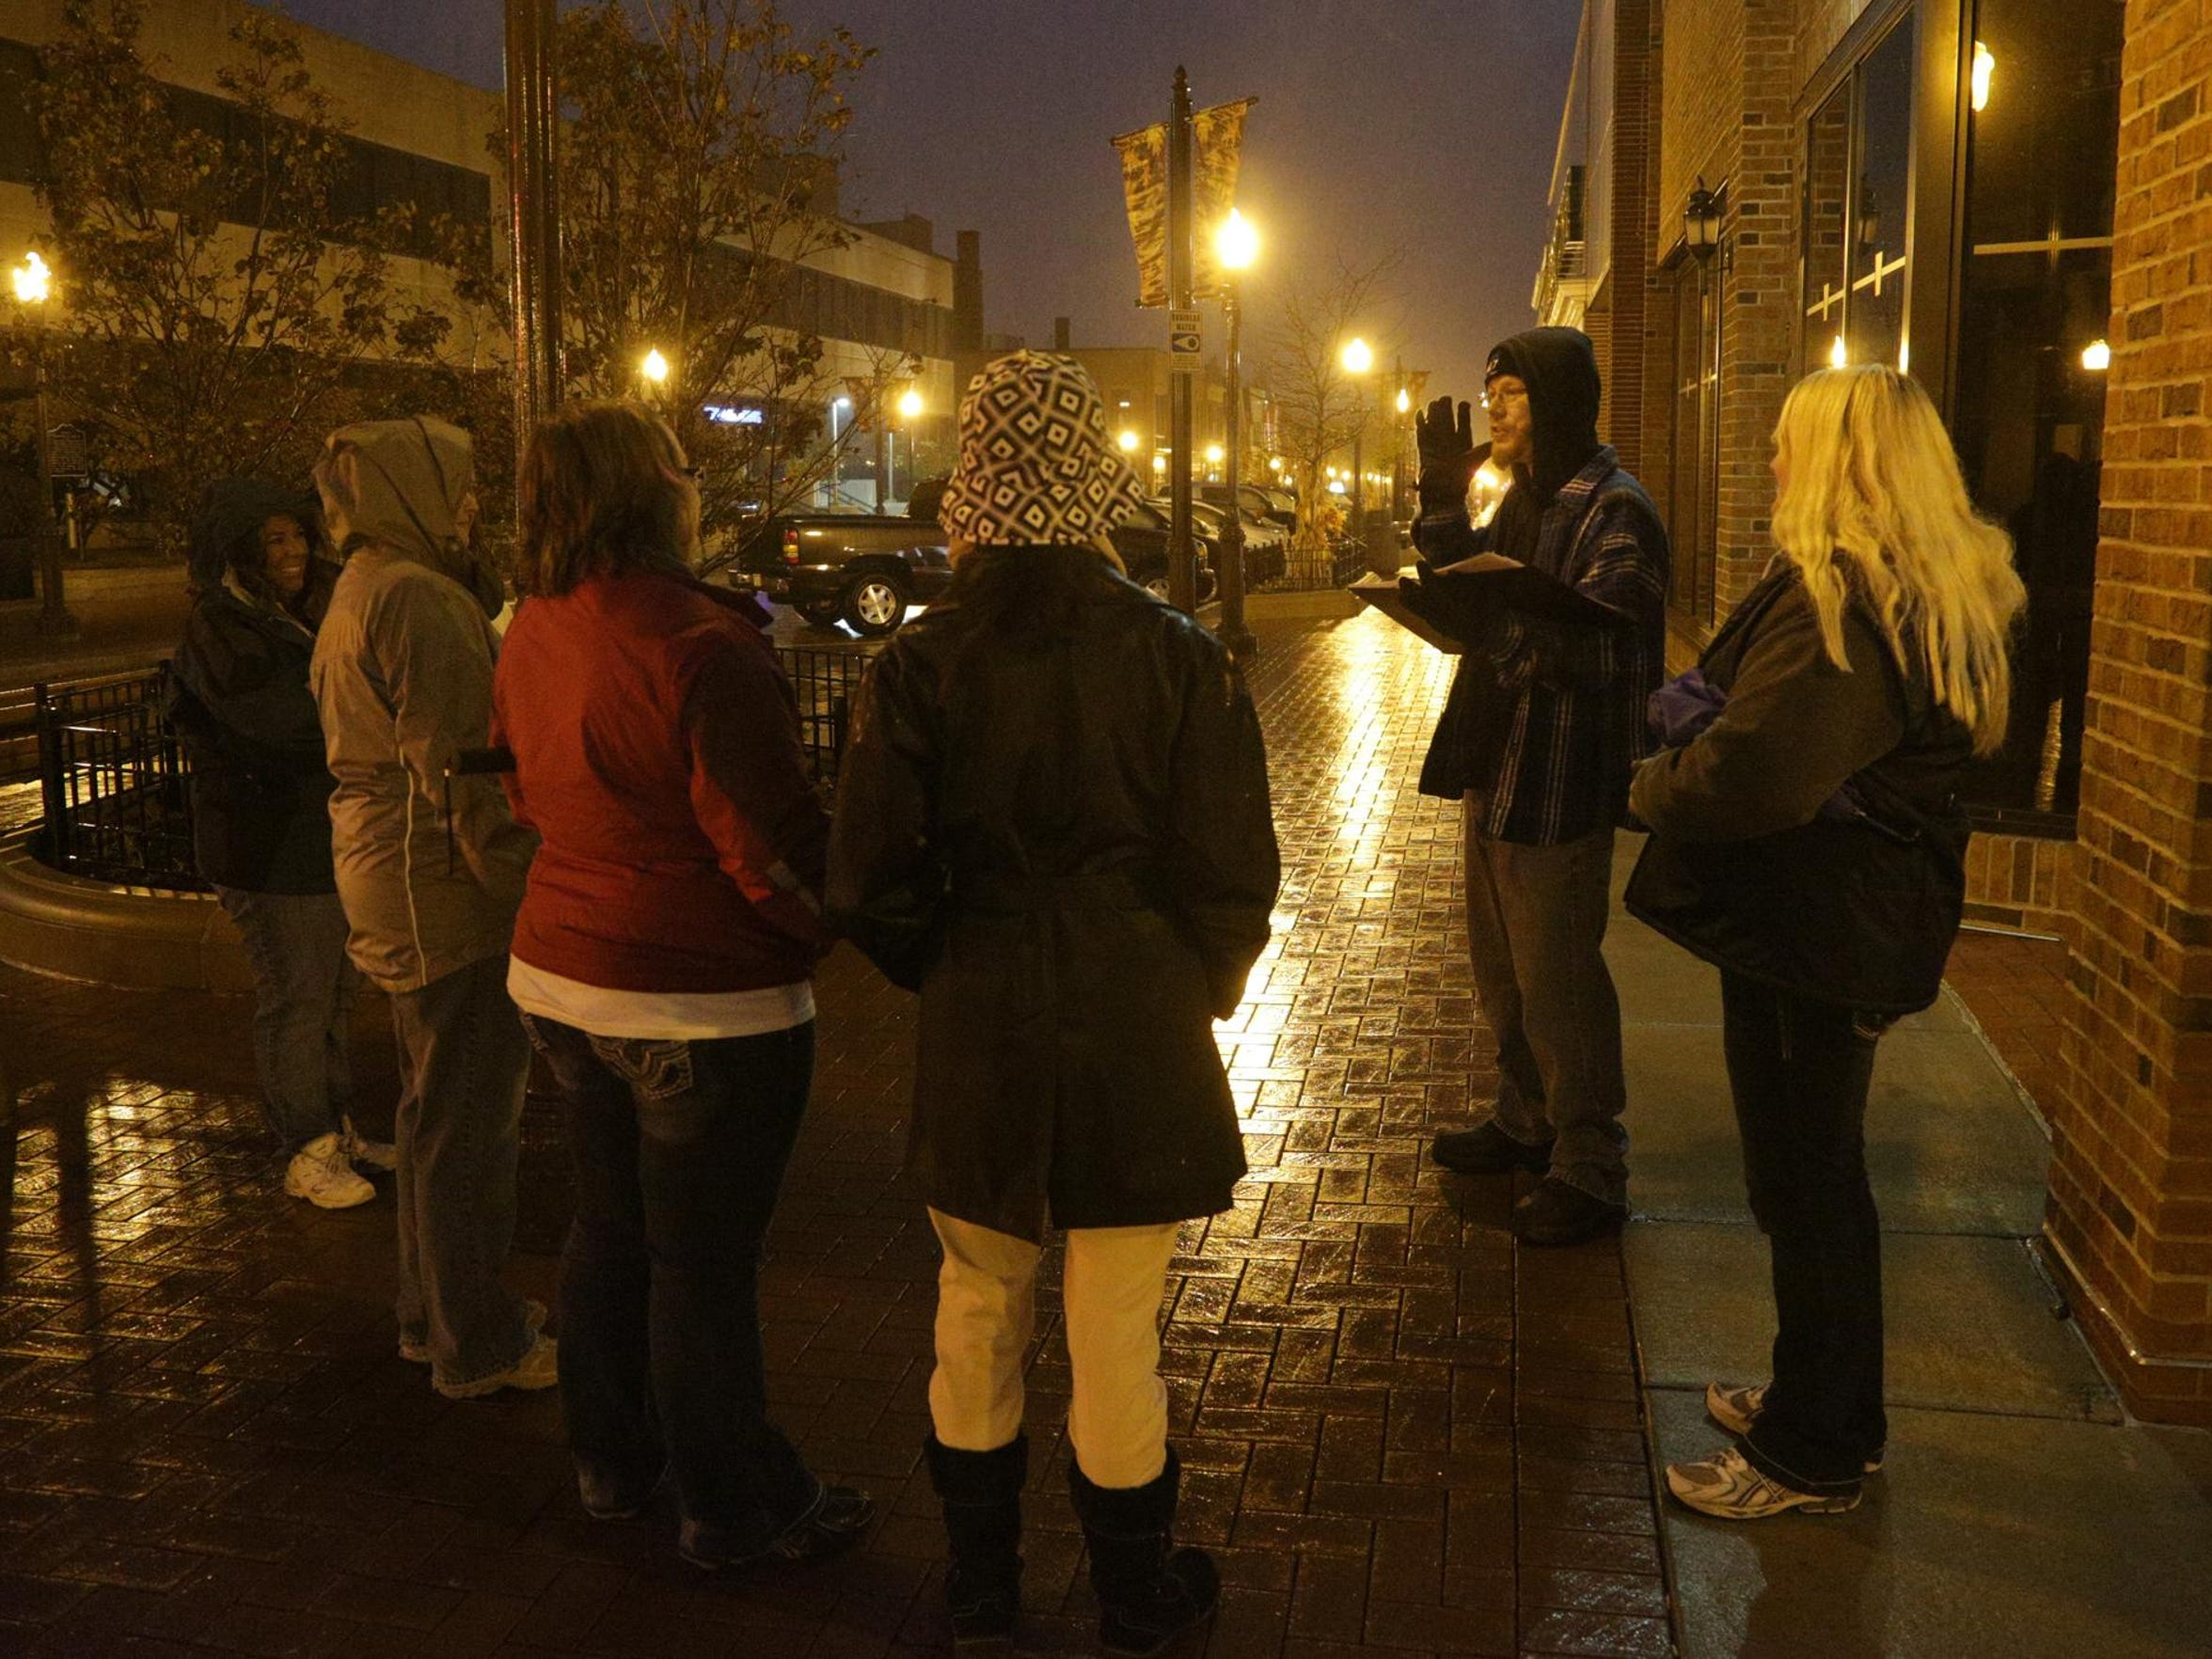 Terry Stevens leads a group during the Wausau Paranormal